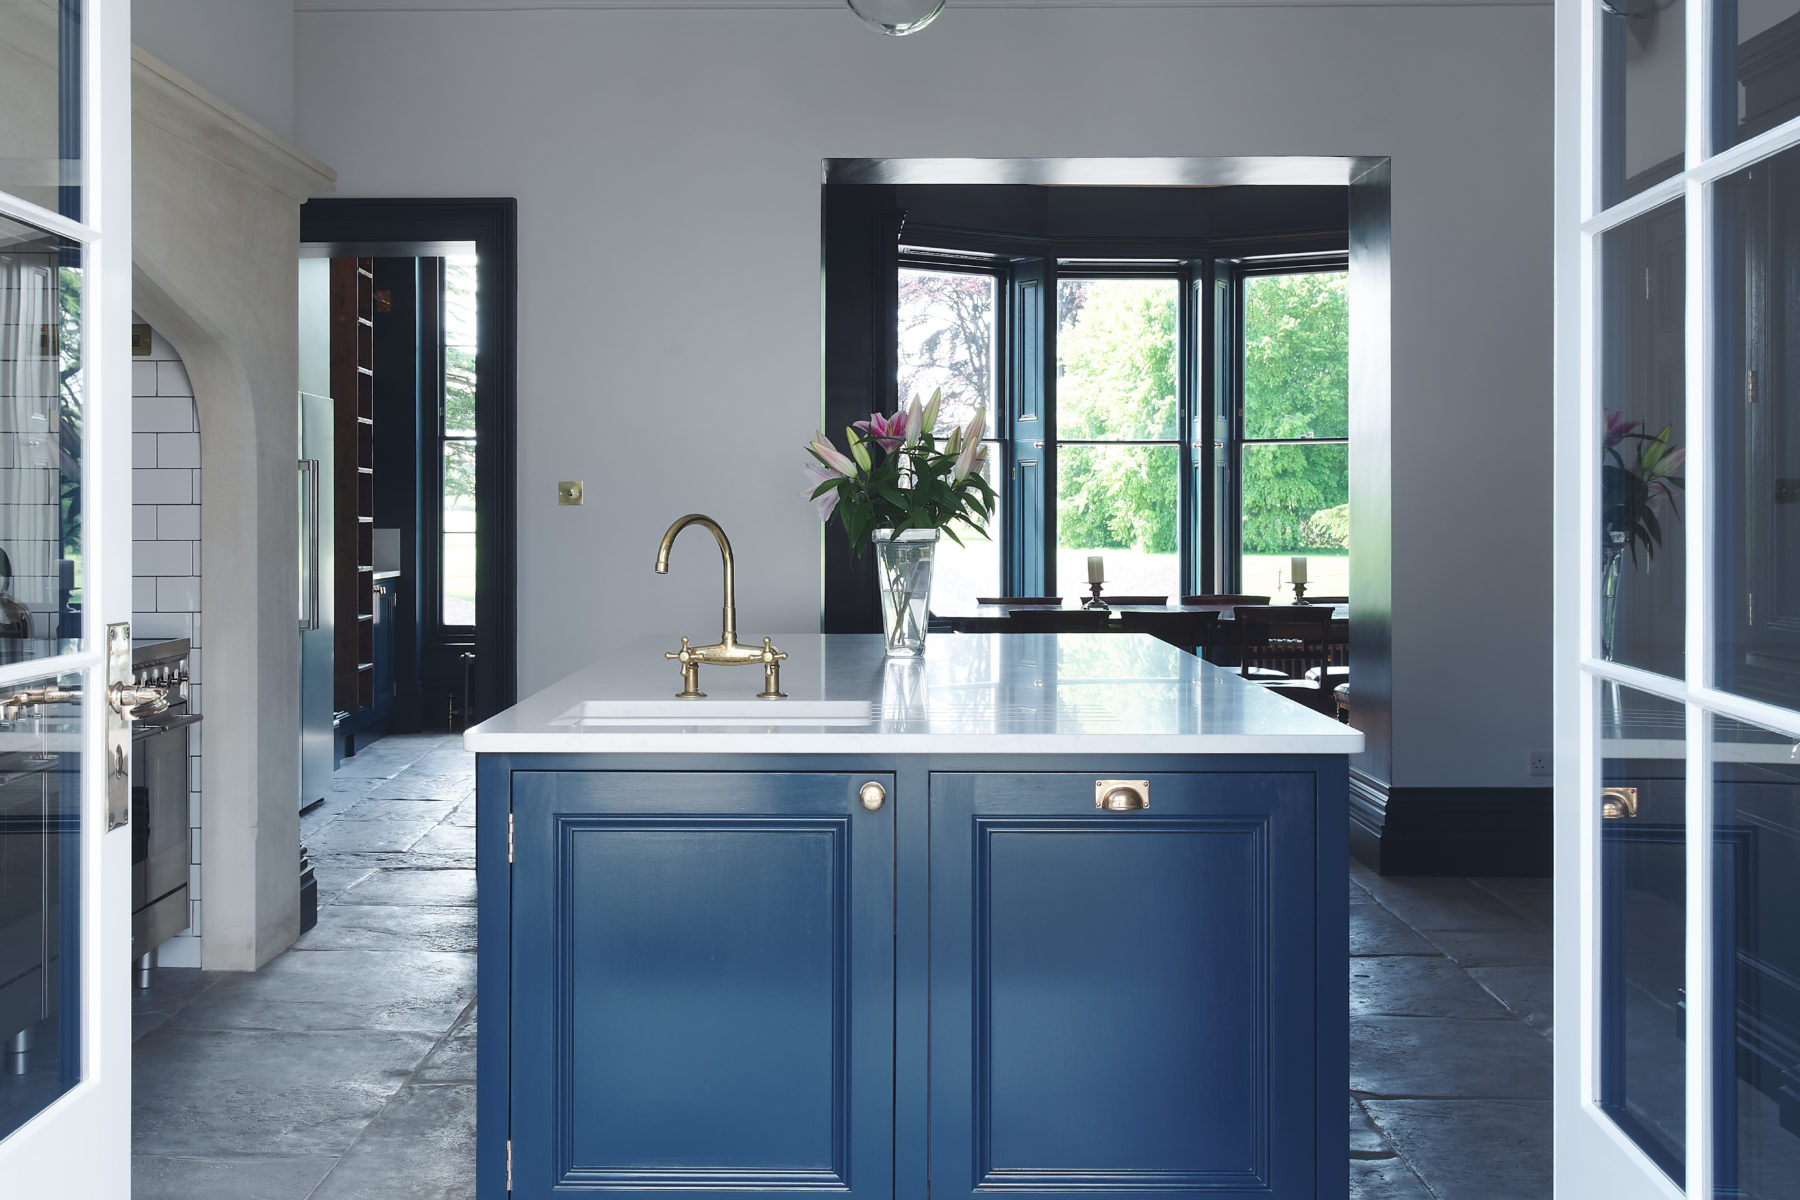 Classic kitchen island in listed manor house